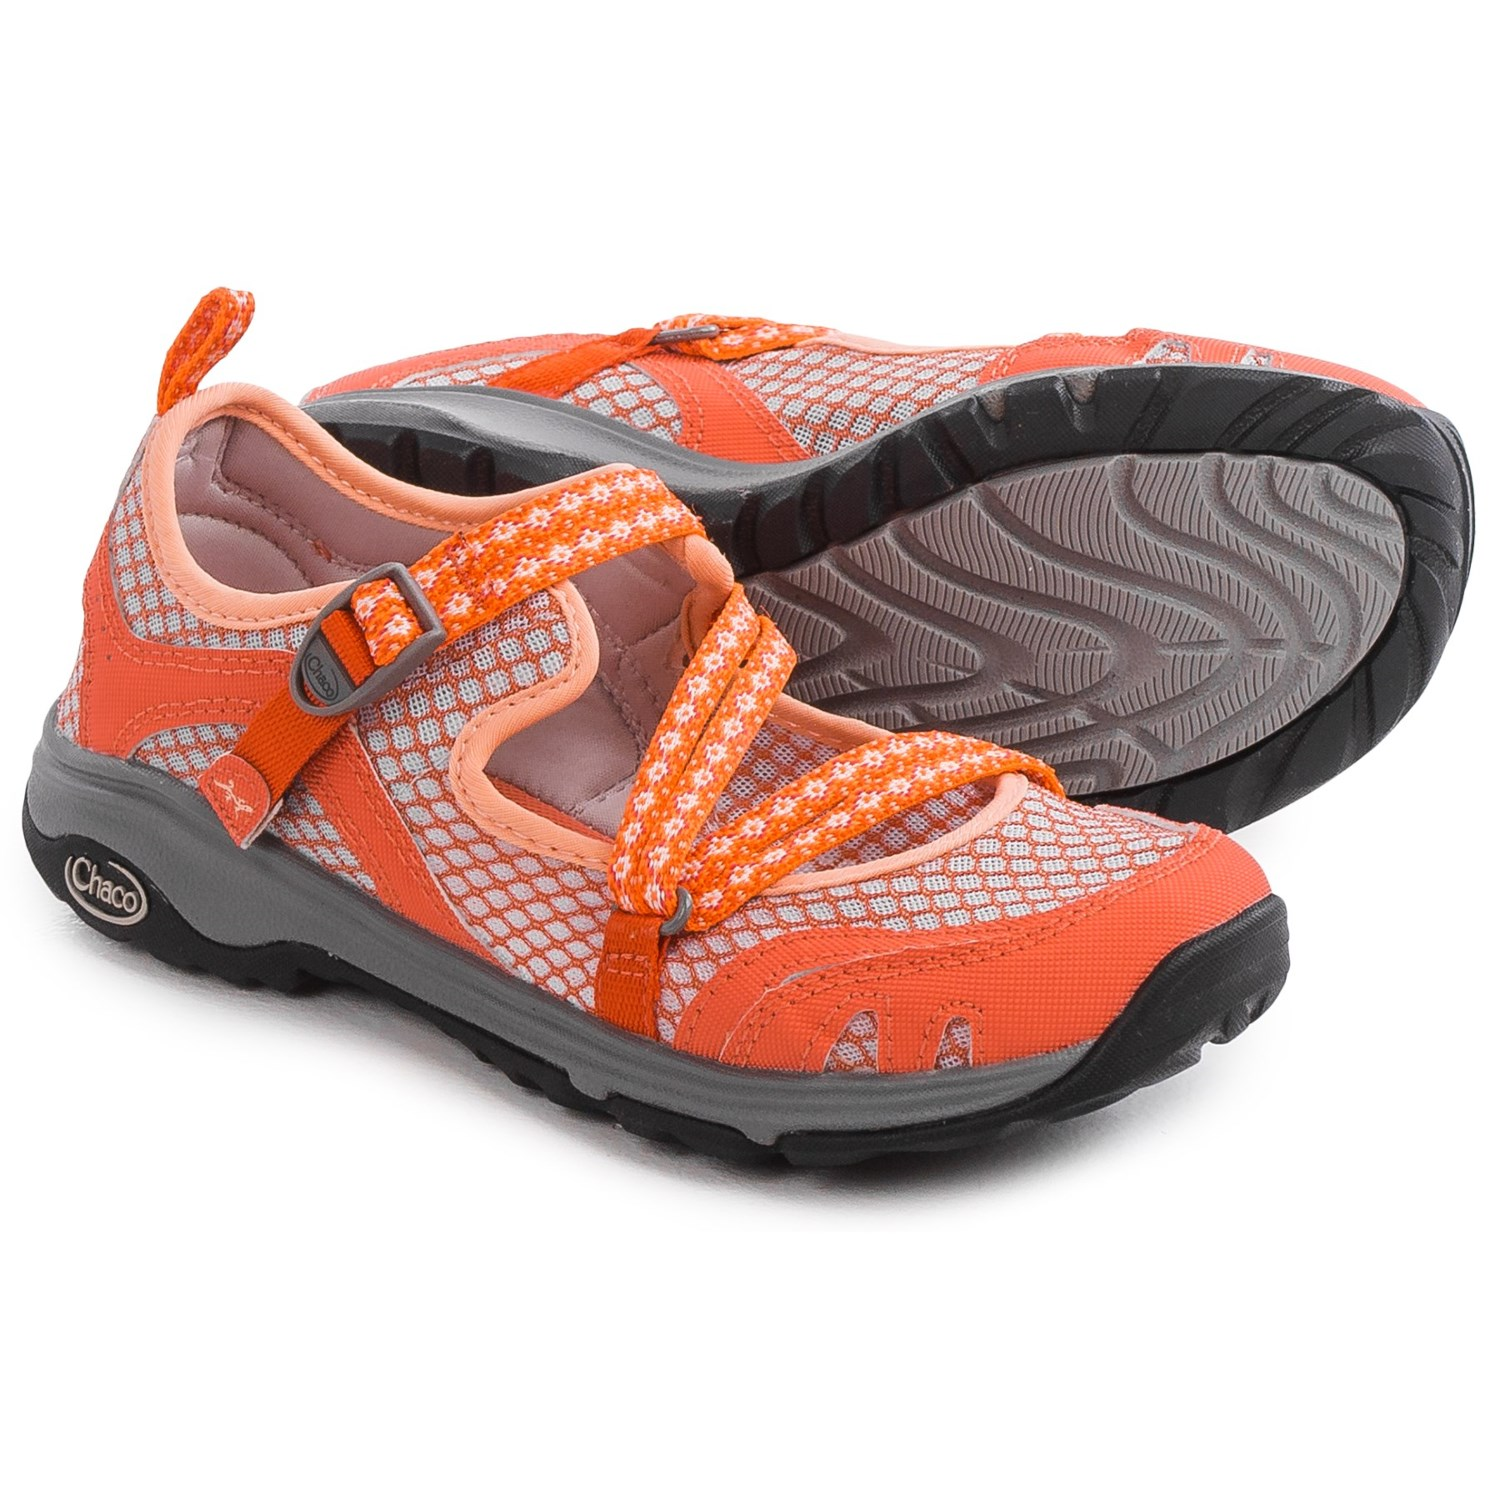 Chaco Outcross Evo Mary Jane Water Shoes For Women 9914m